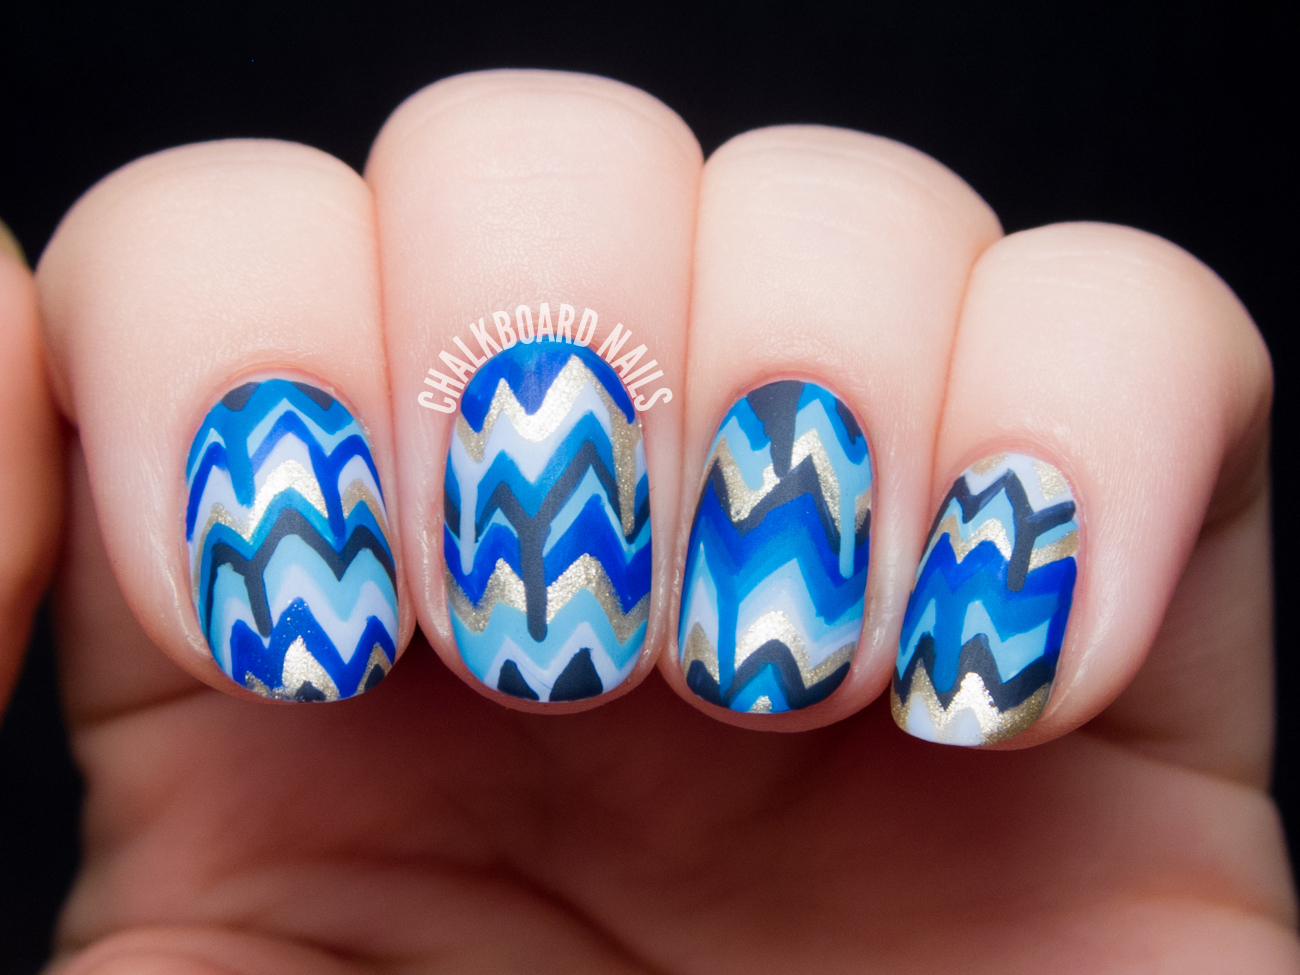 Dripping chevron nail art by @chalkboardnails